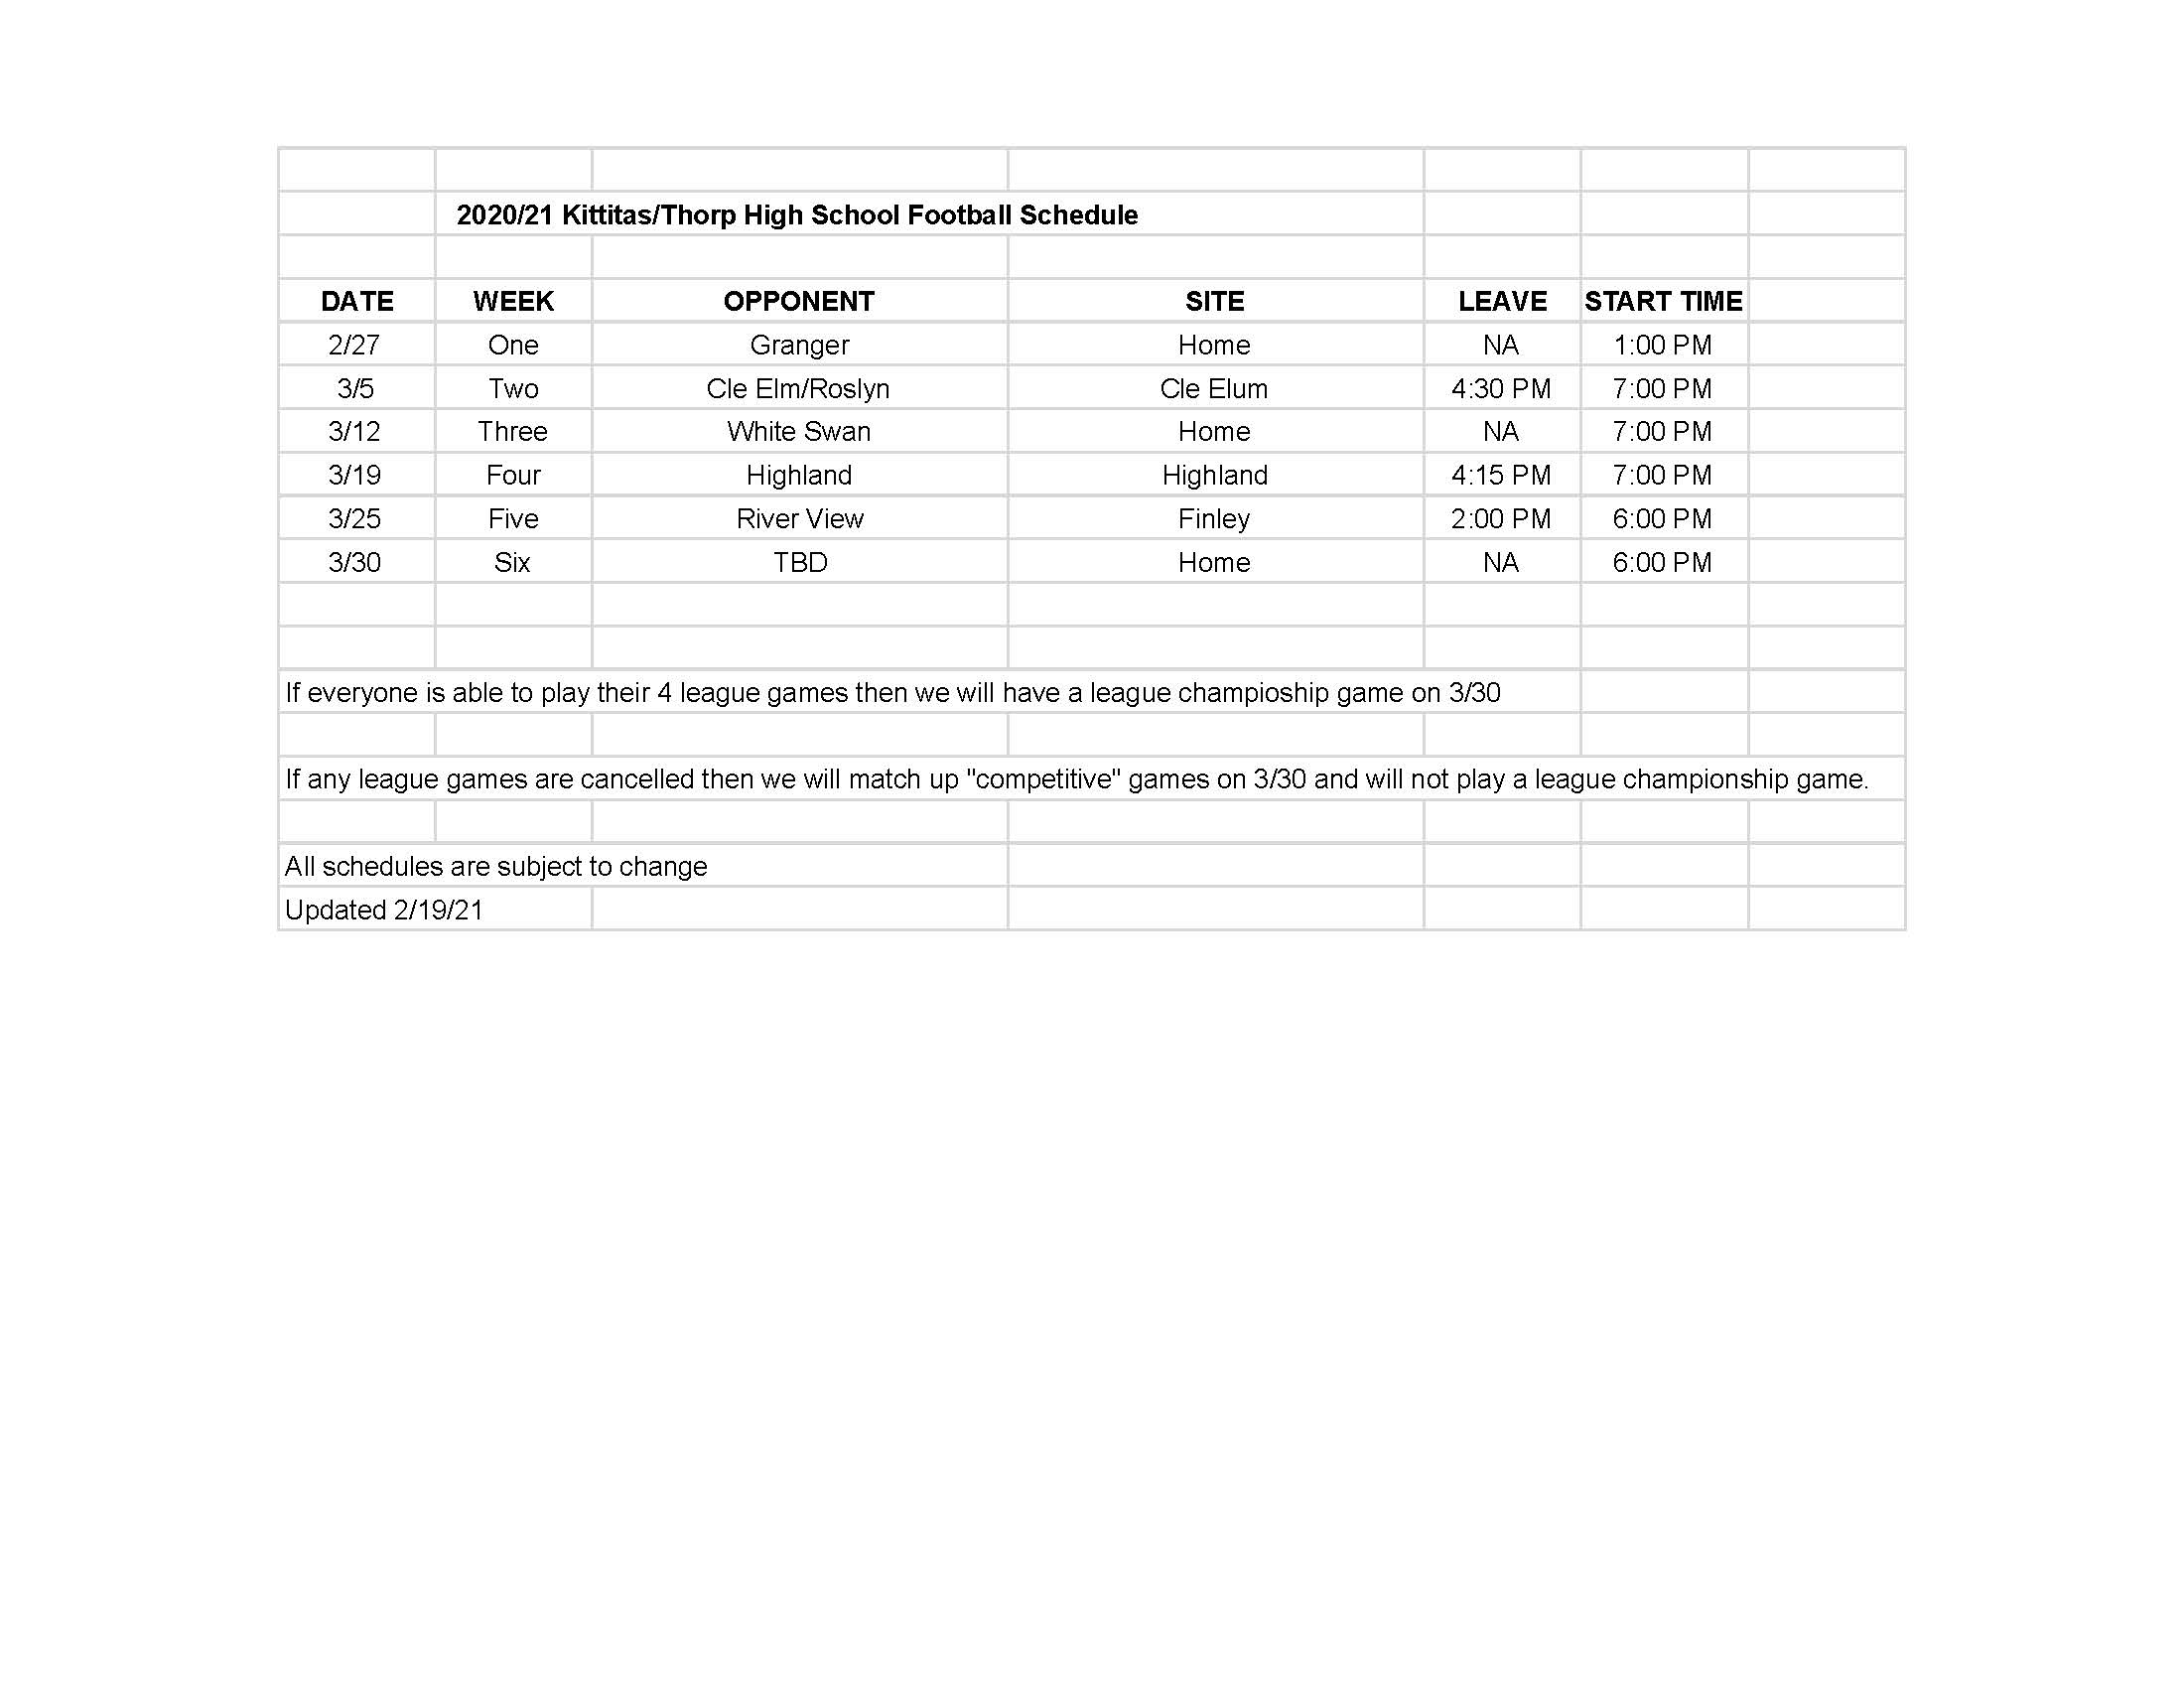 Revised HS Football Schedule